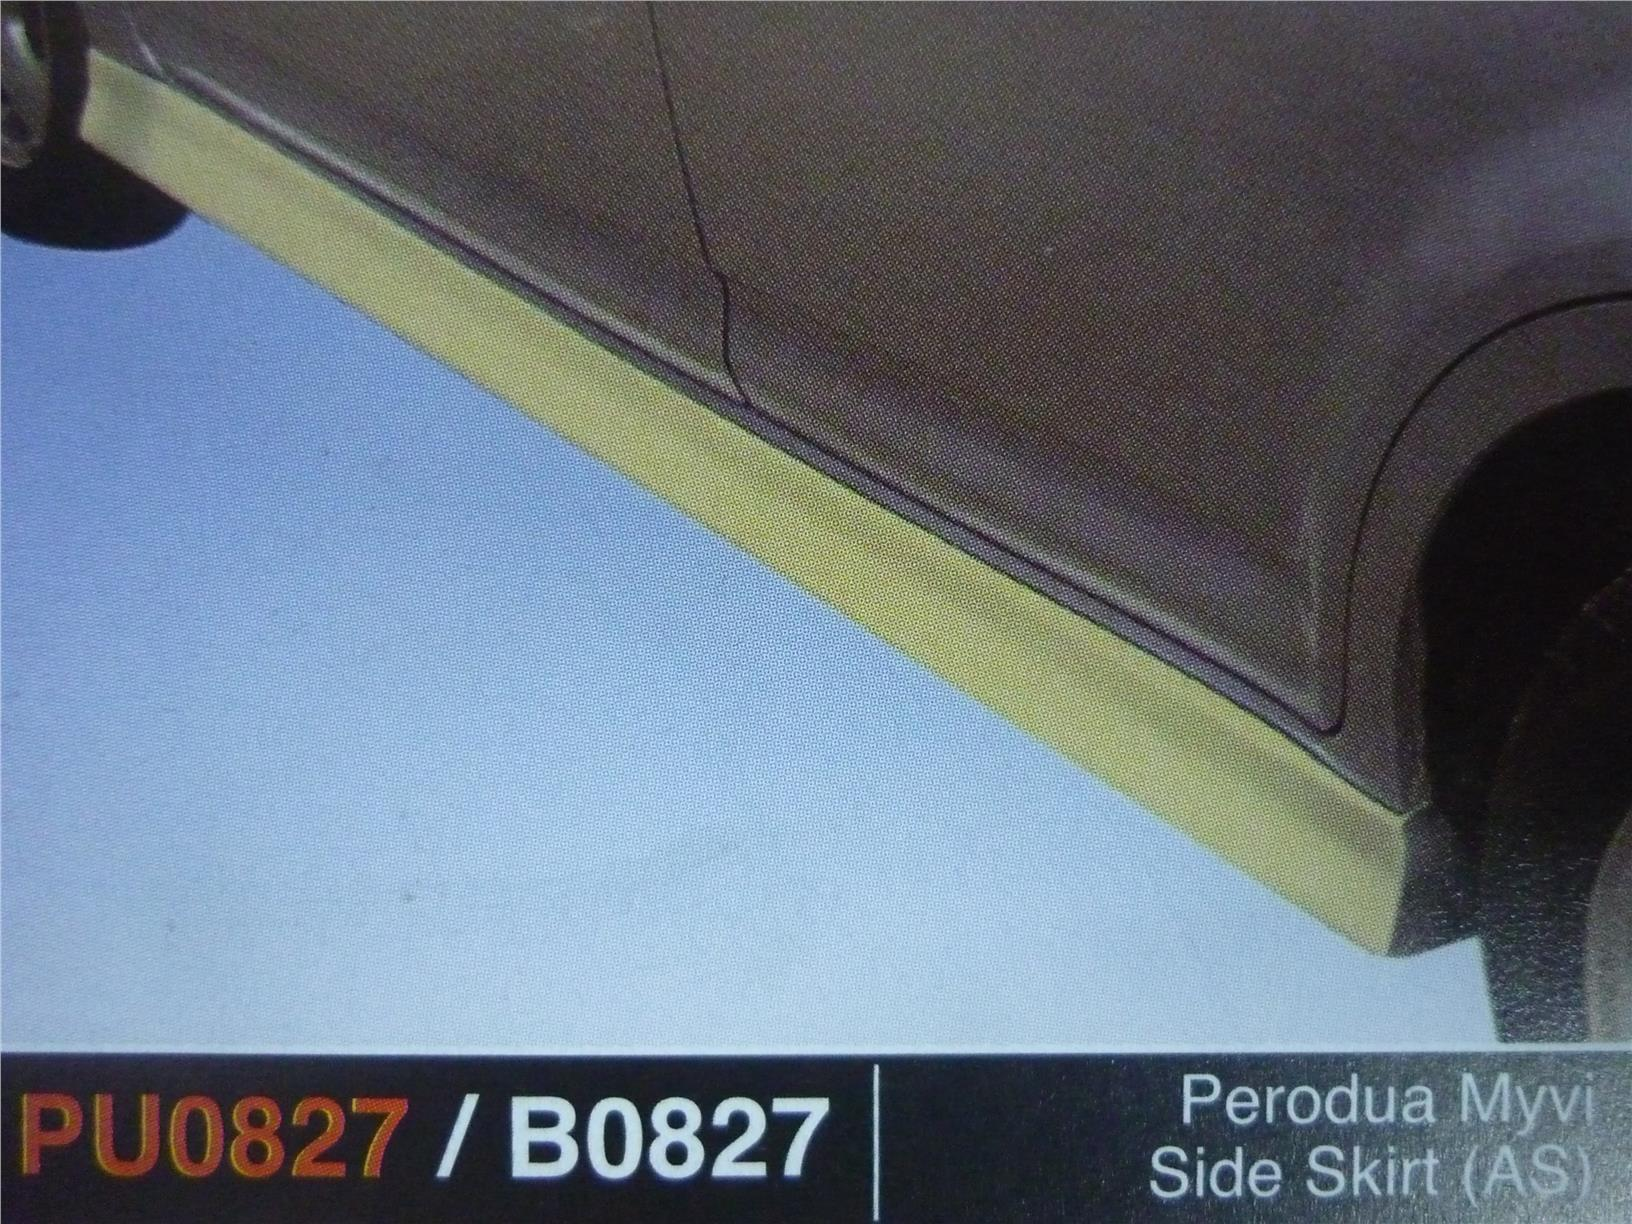 PERODUA MYVI SIDE SKIRT AS PU0827 B0827